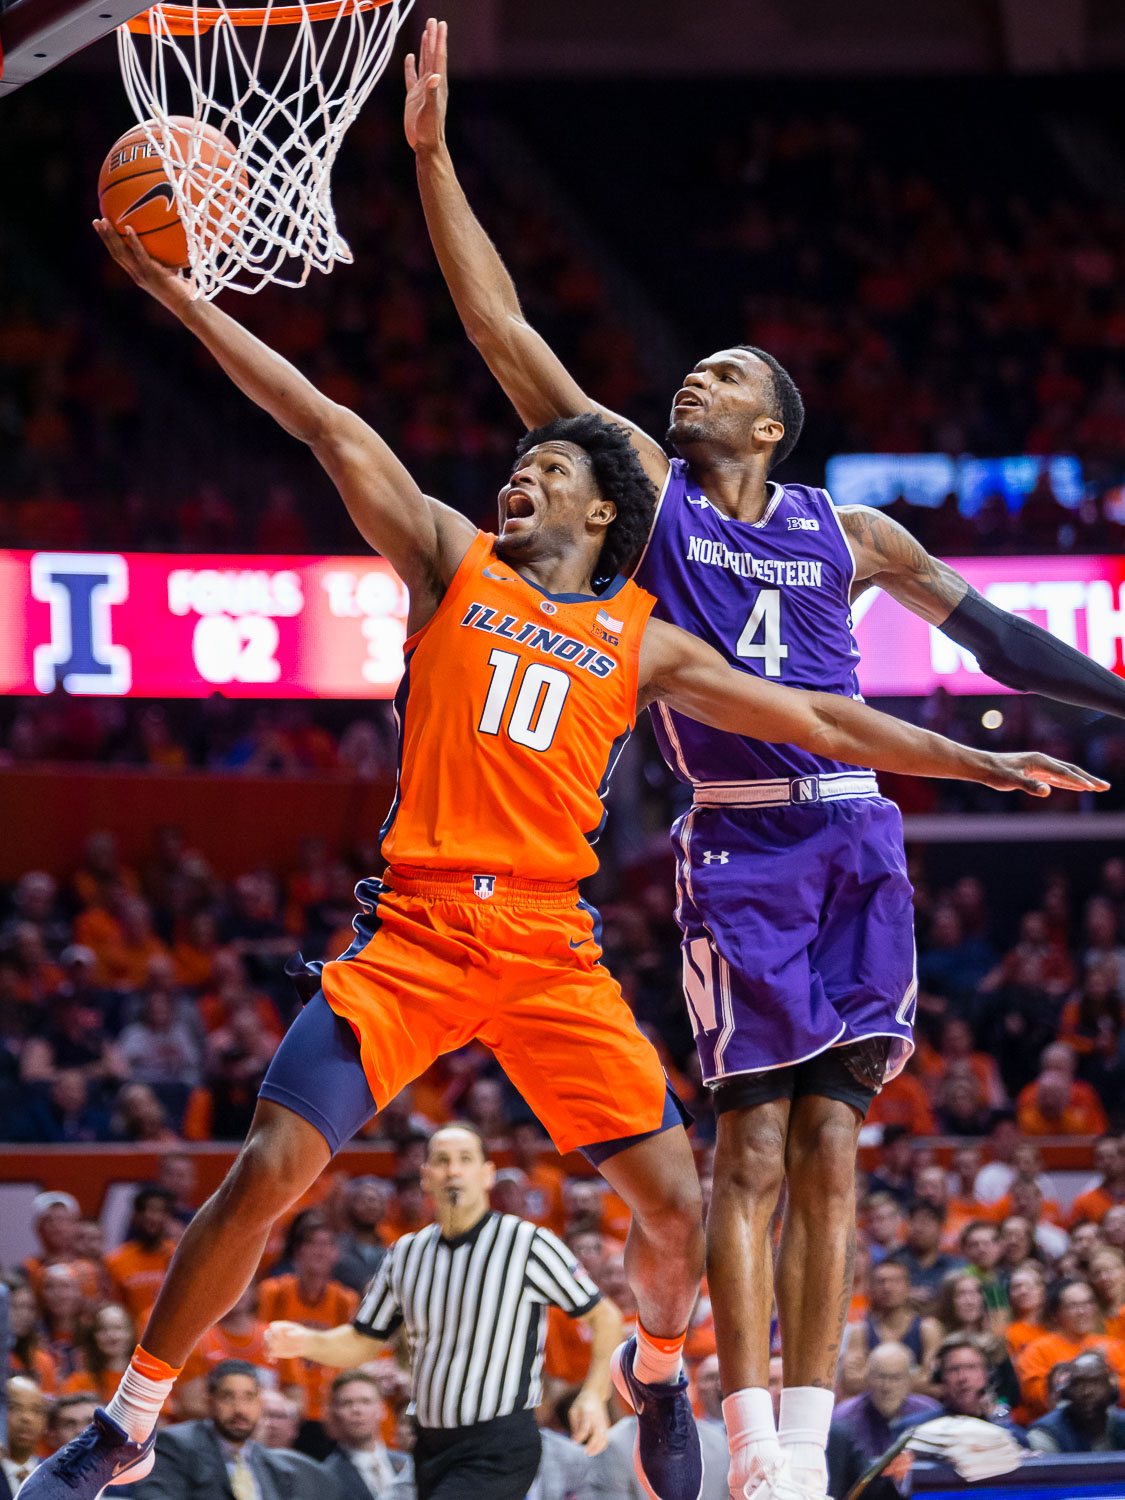 Illinois guard Andres Feliz goes up for a layup during the game against Northwestern at the State Farm Center on Sunday. Feliz put up a career-high 26 points to help the Illini defeat the Wildcats, 81-76.